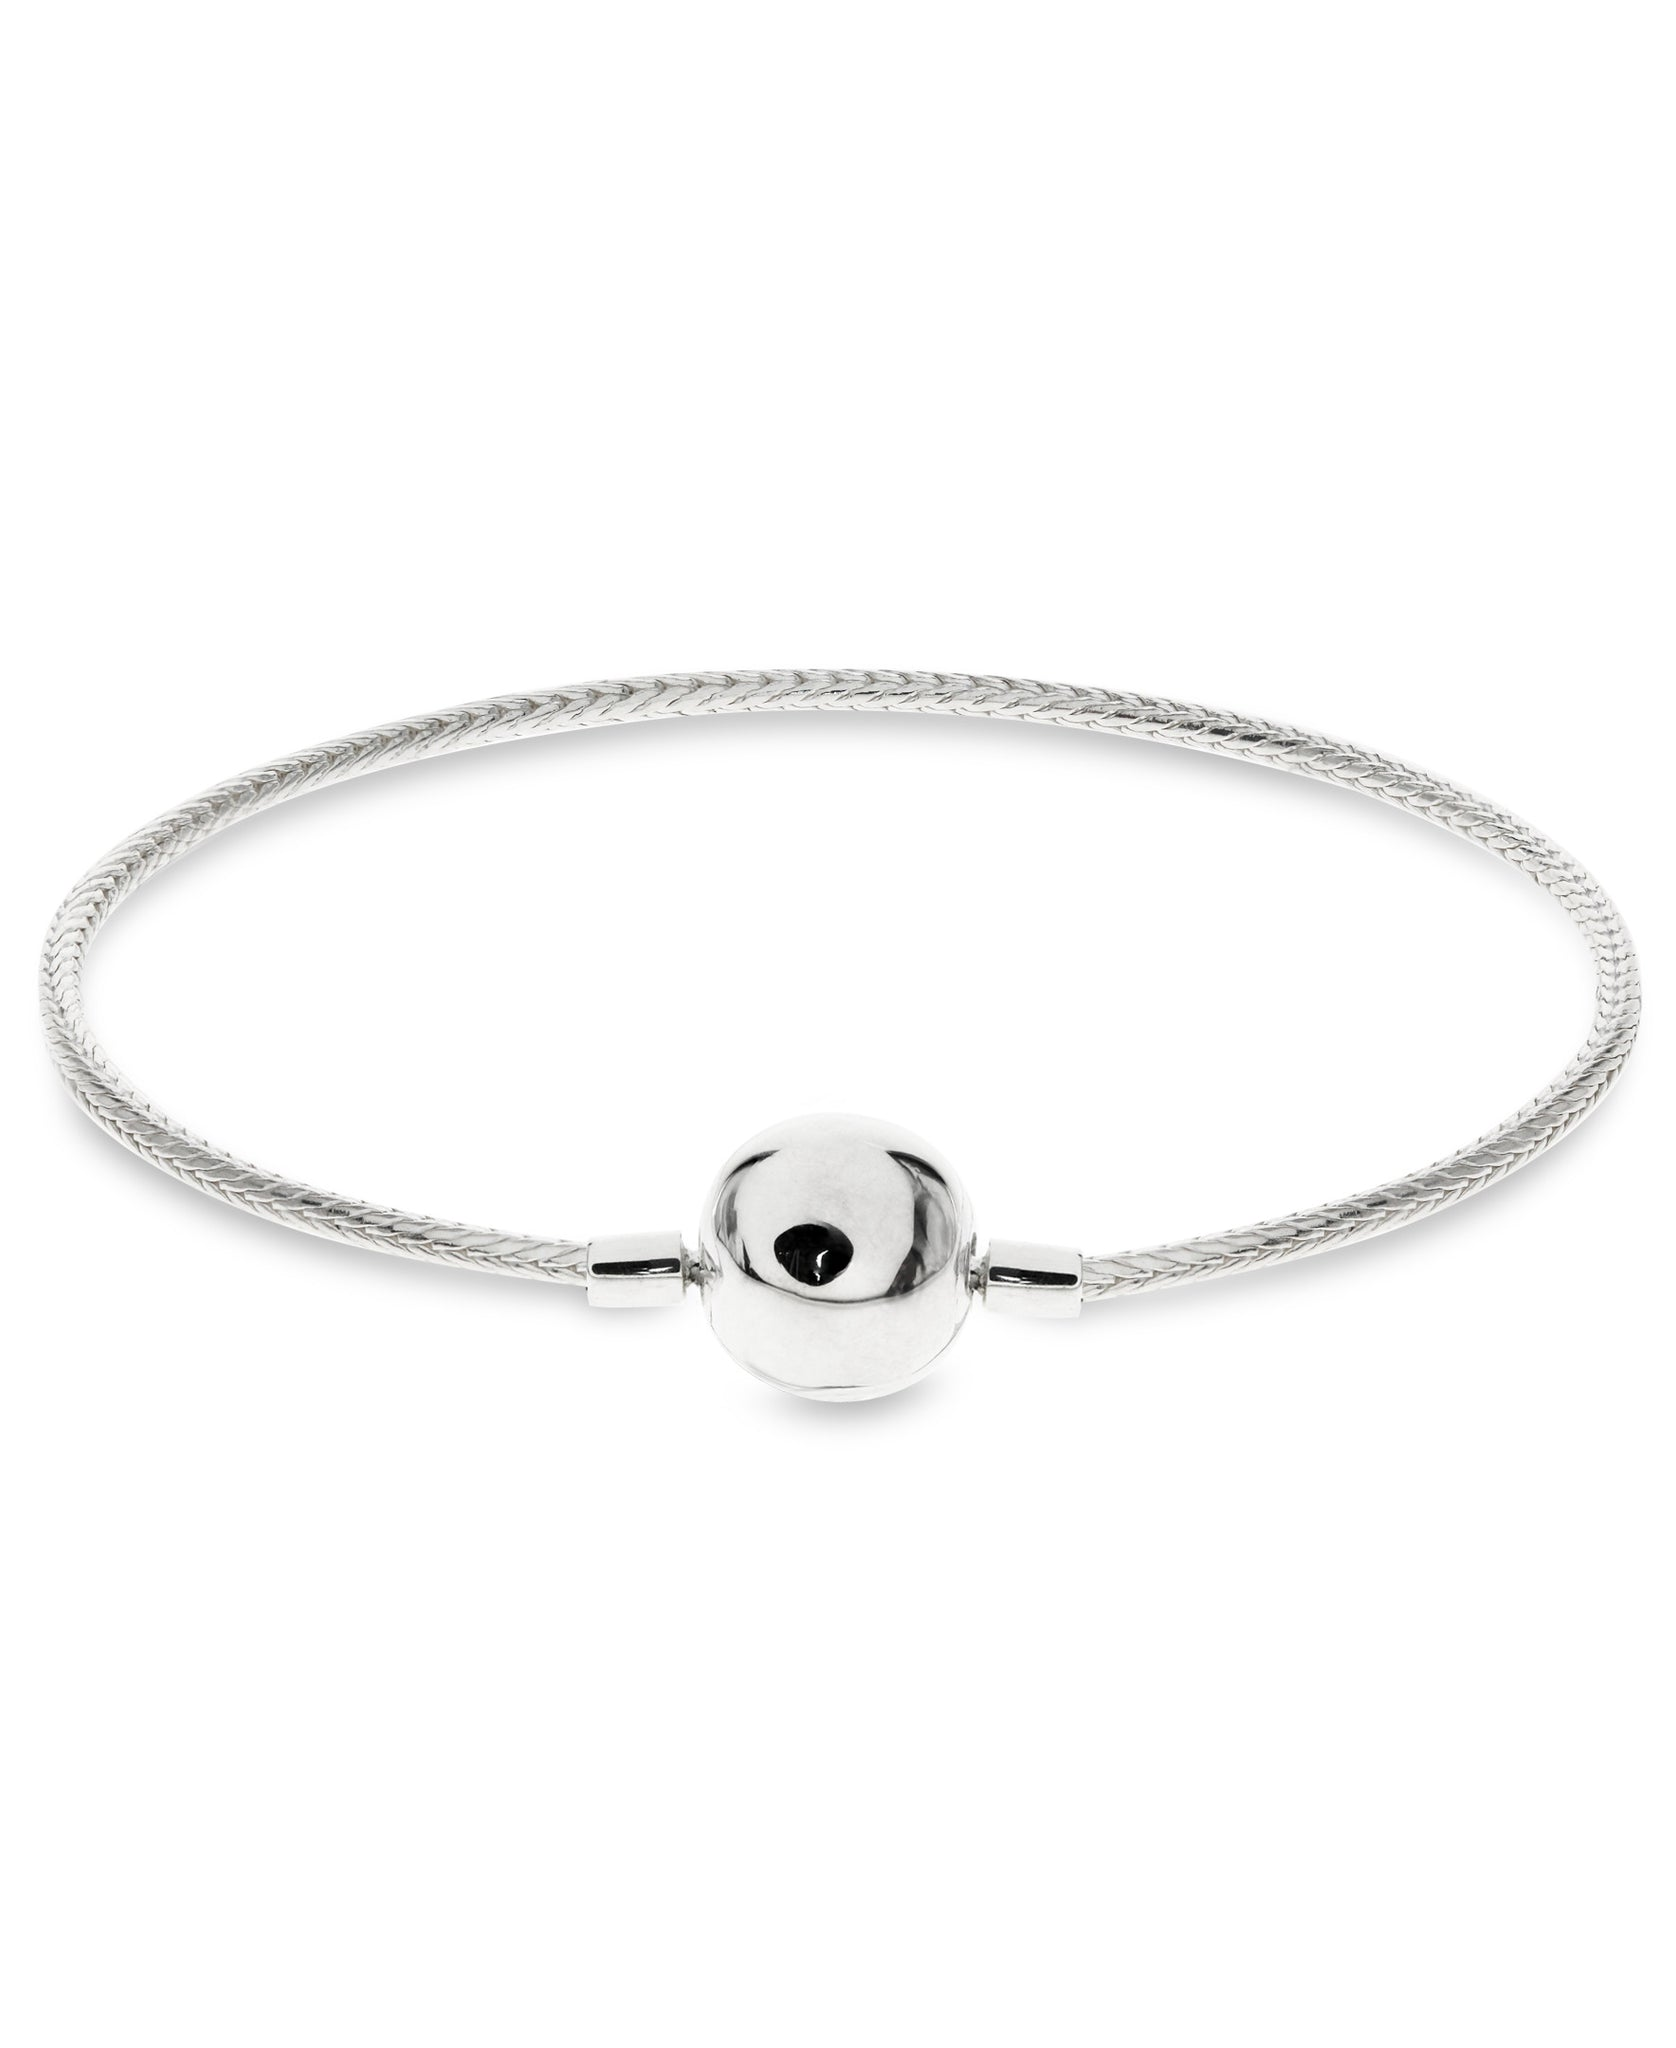 Children's Sterling Silver Snake Chain Charm Carrier Bracelet - Rhona Sutton Jewellery